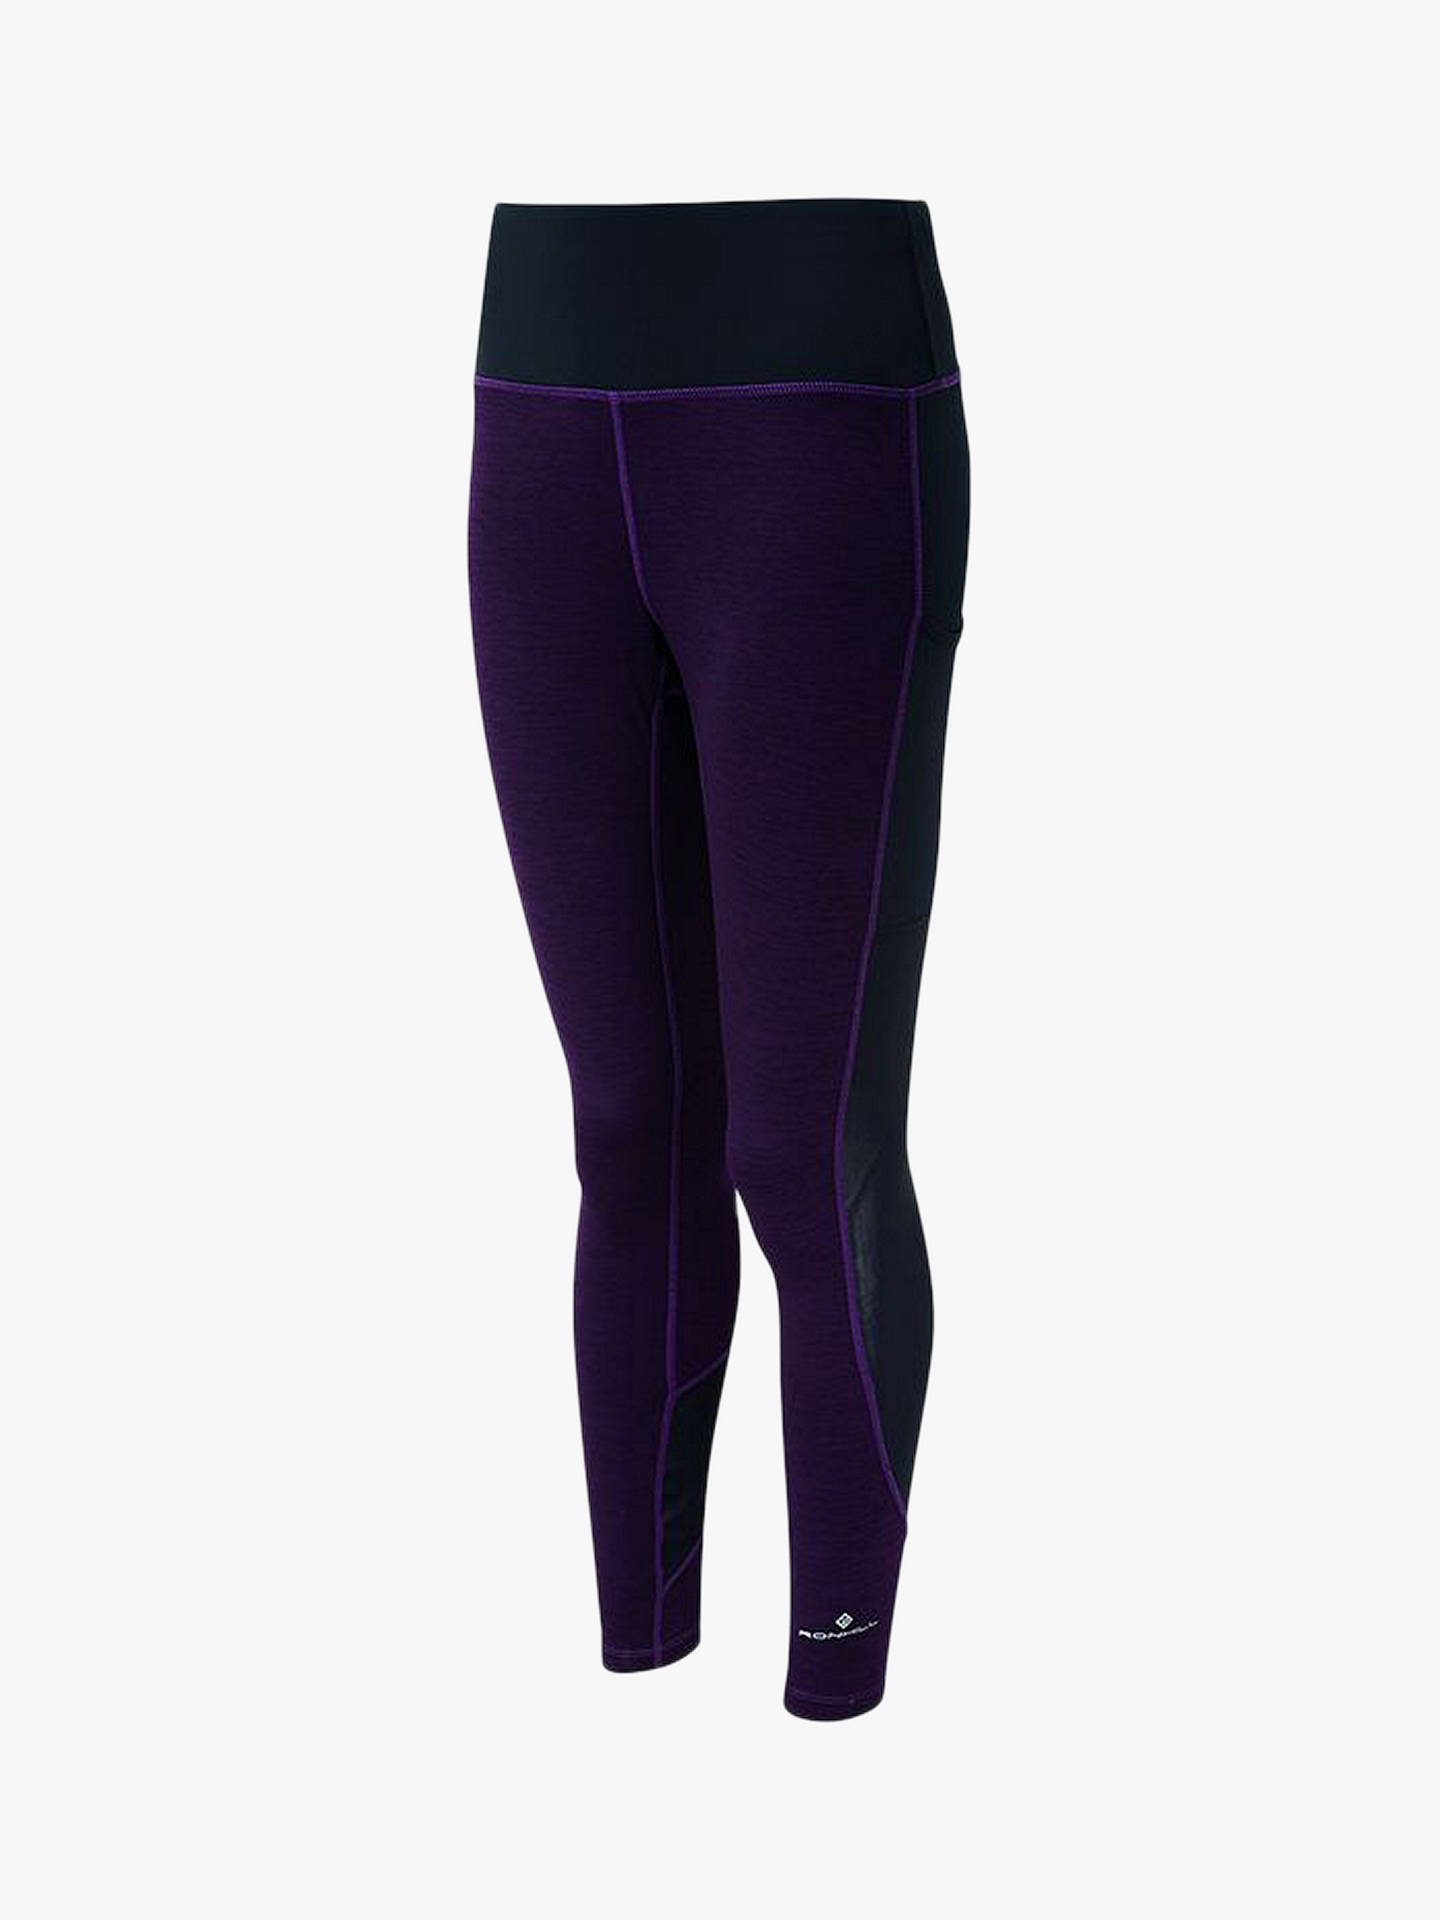 Buy Ronhill Momentum Agile Running Leggings, Aubergine Marl/Black, 16 Online at johnlewis.com